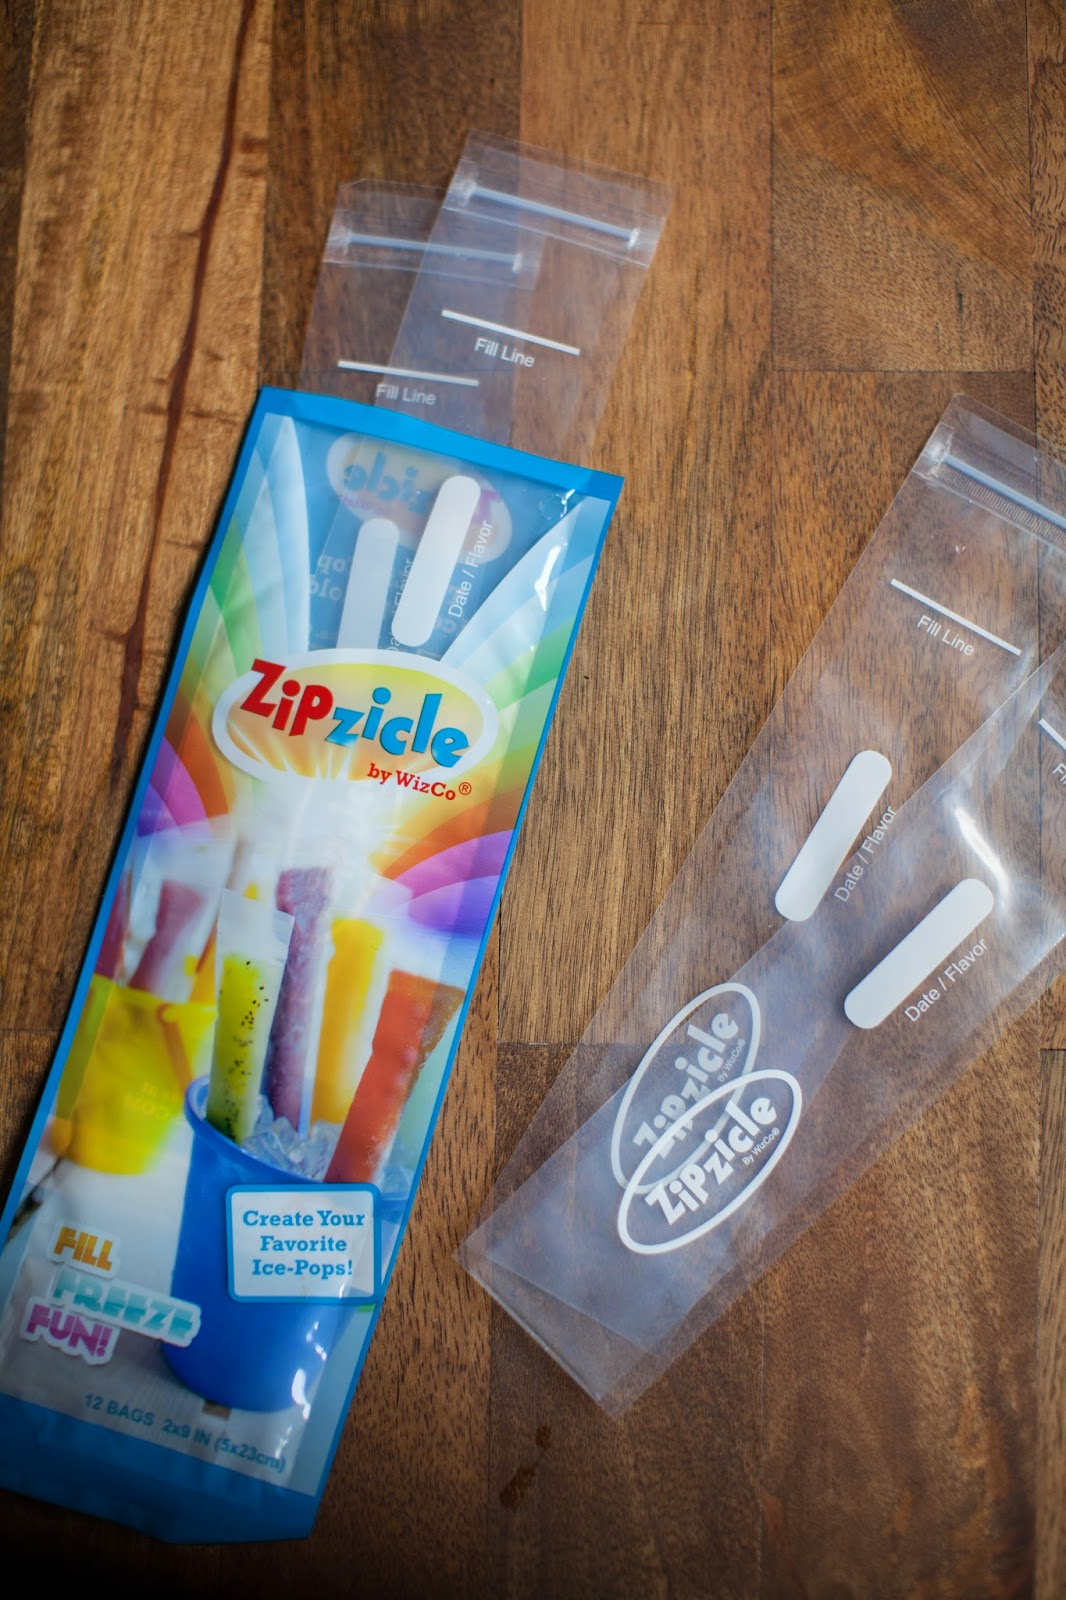 Zipzicle Ice-Pop Pouches